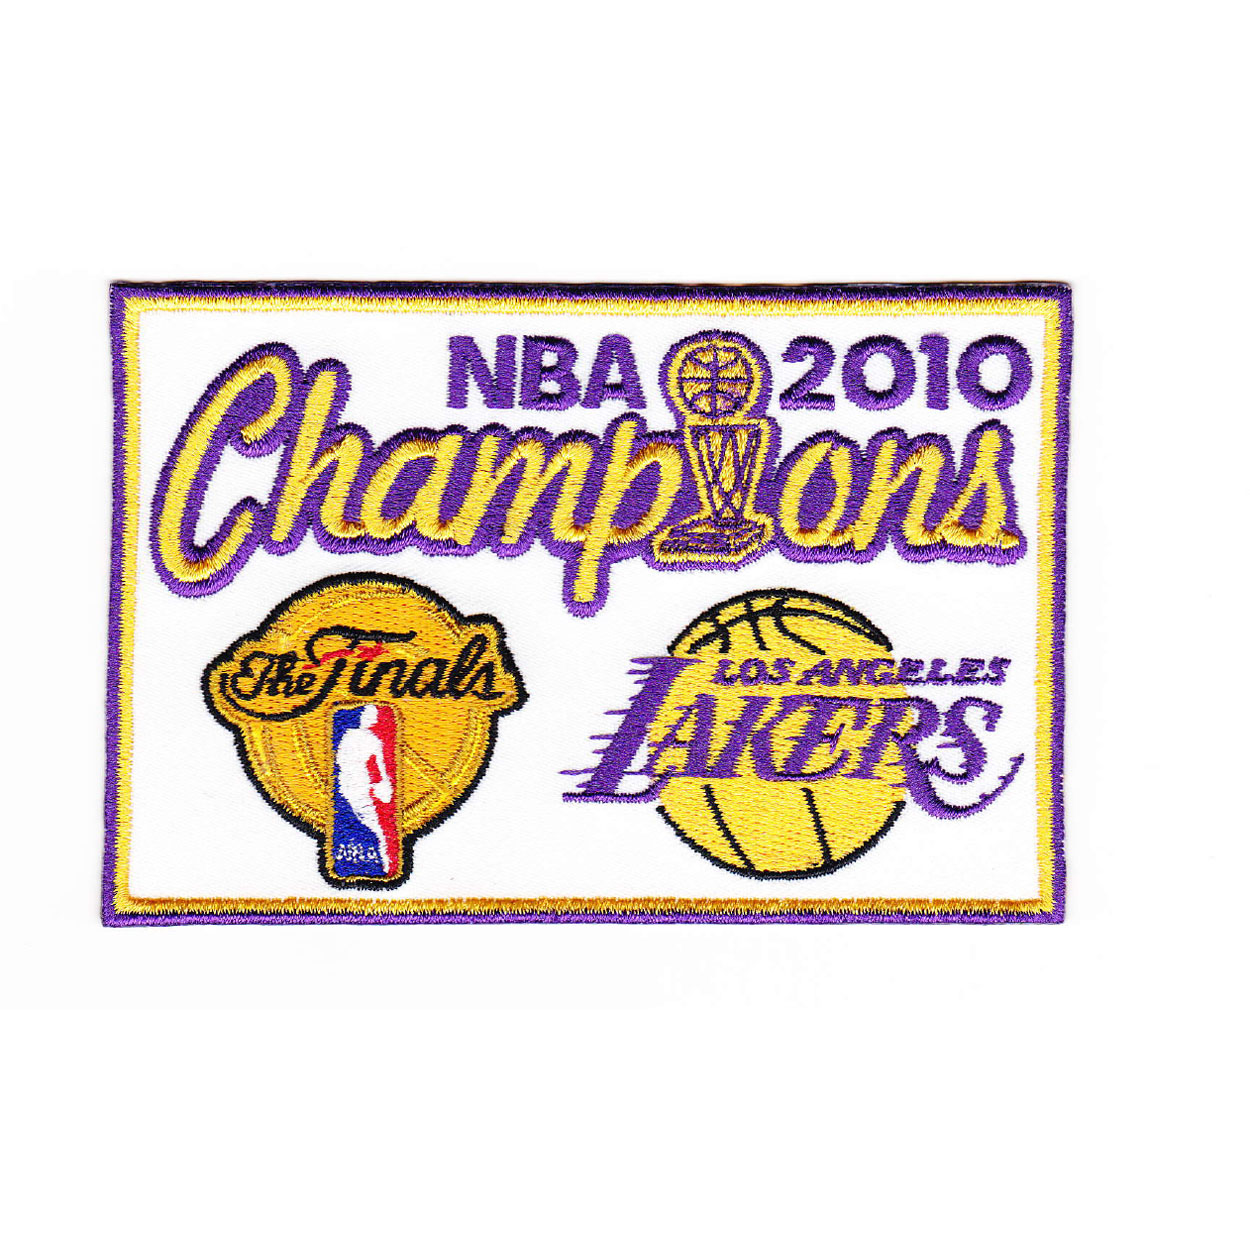 2010 NBA Championship Patch - Los Angeles Lakers